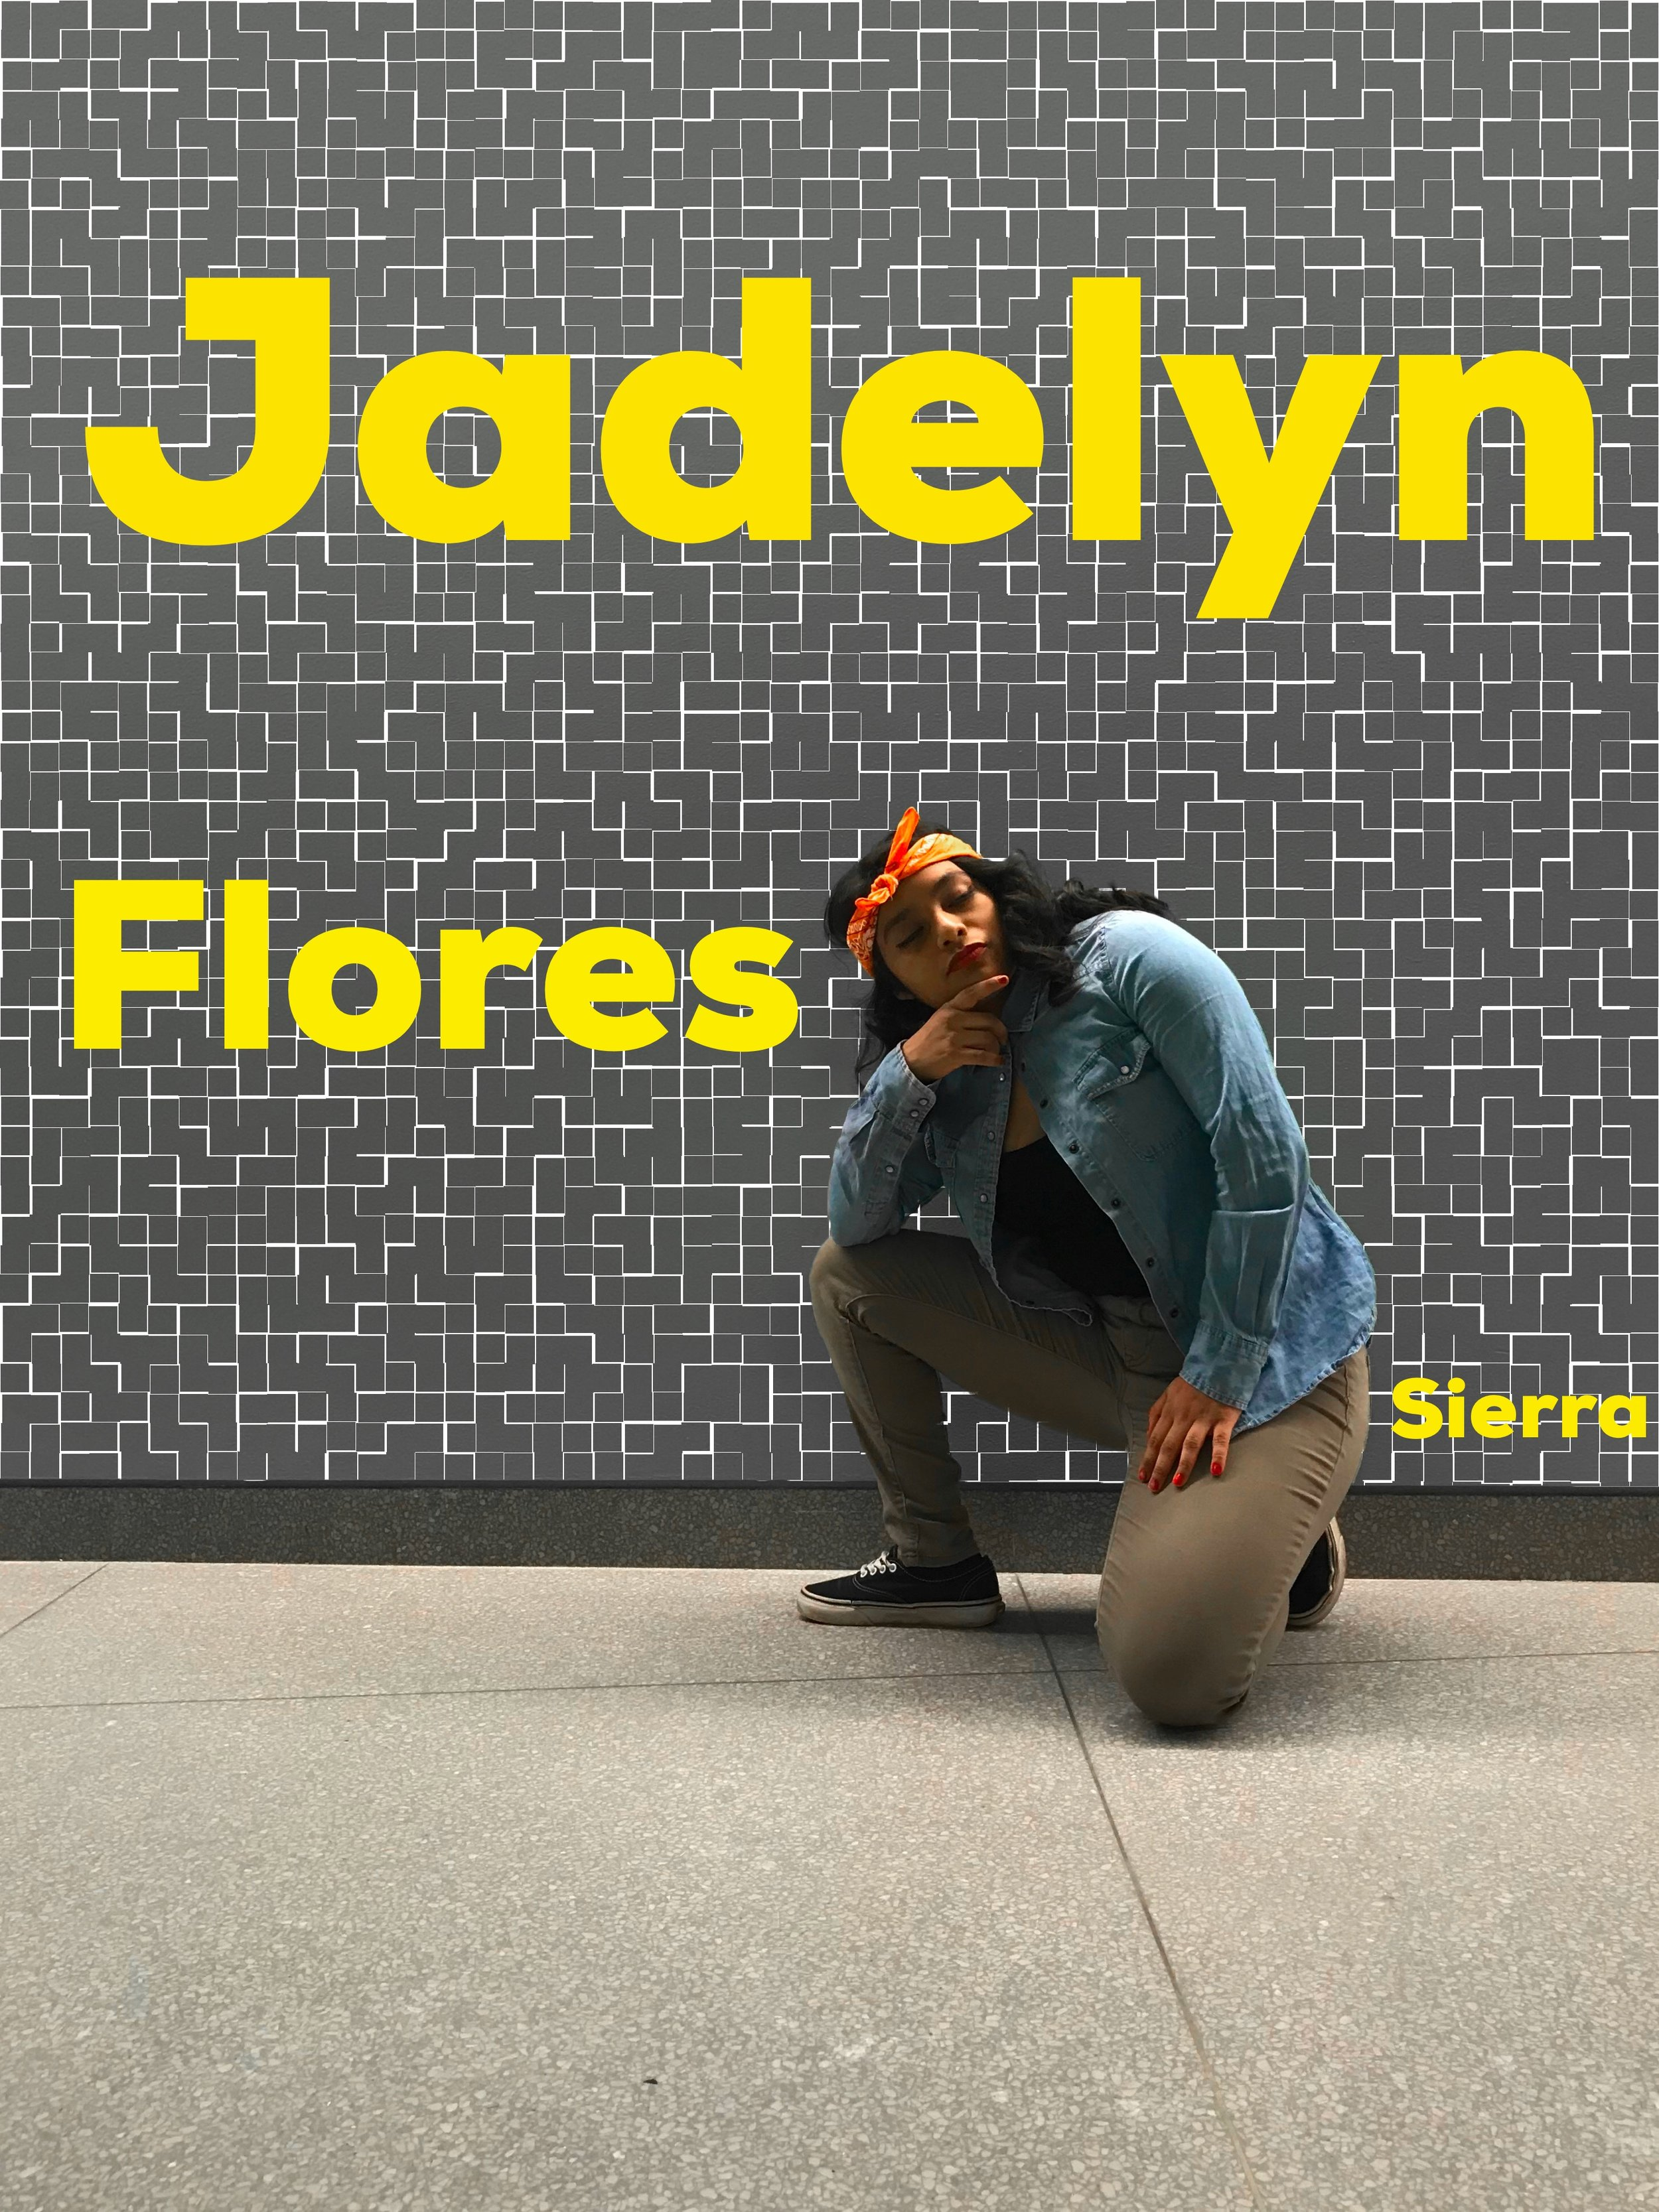 """Jadelyn Sierra—Mexican """"Chola""""   For her look, Jadelyn chose to represent a subset of the Mexican culture through her """"cholo(a)"""" look. According to her, this is the stereotypical """"hood""""/""""gangster"""" look for Mexican Americans. The """"cholo"""" look usually consists of a button down shirt with only one button buttoned, paired with a tank-top or crop-top for women and a white wife beater for men. For women, khaki pants are common and for men, khaki shorts with long white socks are the norm. However, Jadelyn had to substitute the usual converses with her Vans. """"Chola"""" makeup for women roughly resembles a Marilyn Monroe aesthetic with a bright red lip. Although the eyebrows are thin and darkened, Jadelyn was unable to master the """"chola"""" eyebrow and instead went with her natural ones. The """"cholo"""" look also consists of a bandana, often red bandana for its vibrancy or brown for brown pride."""